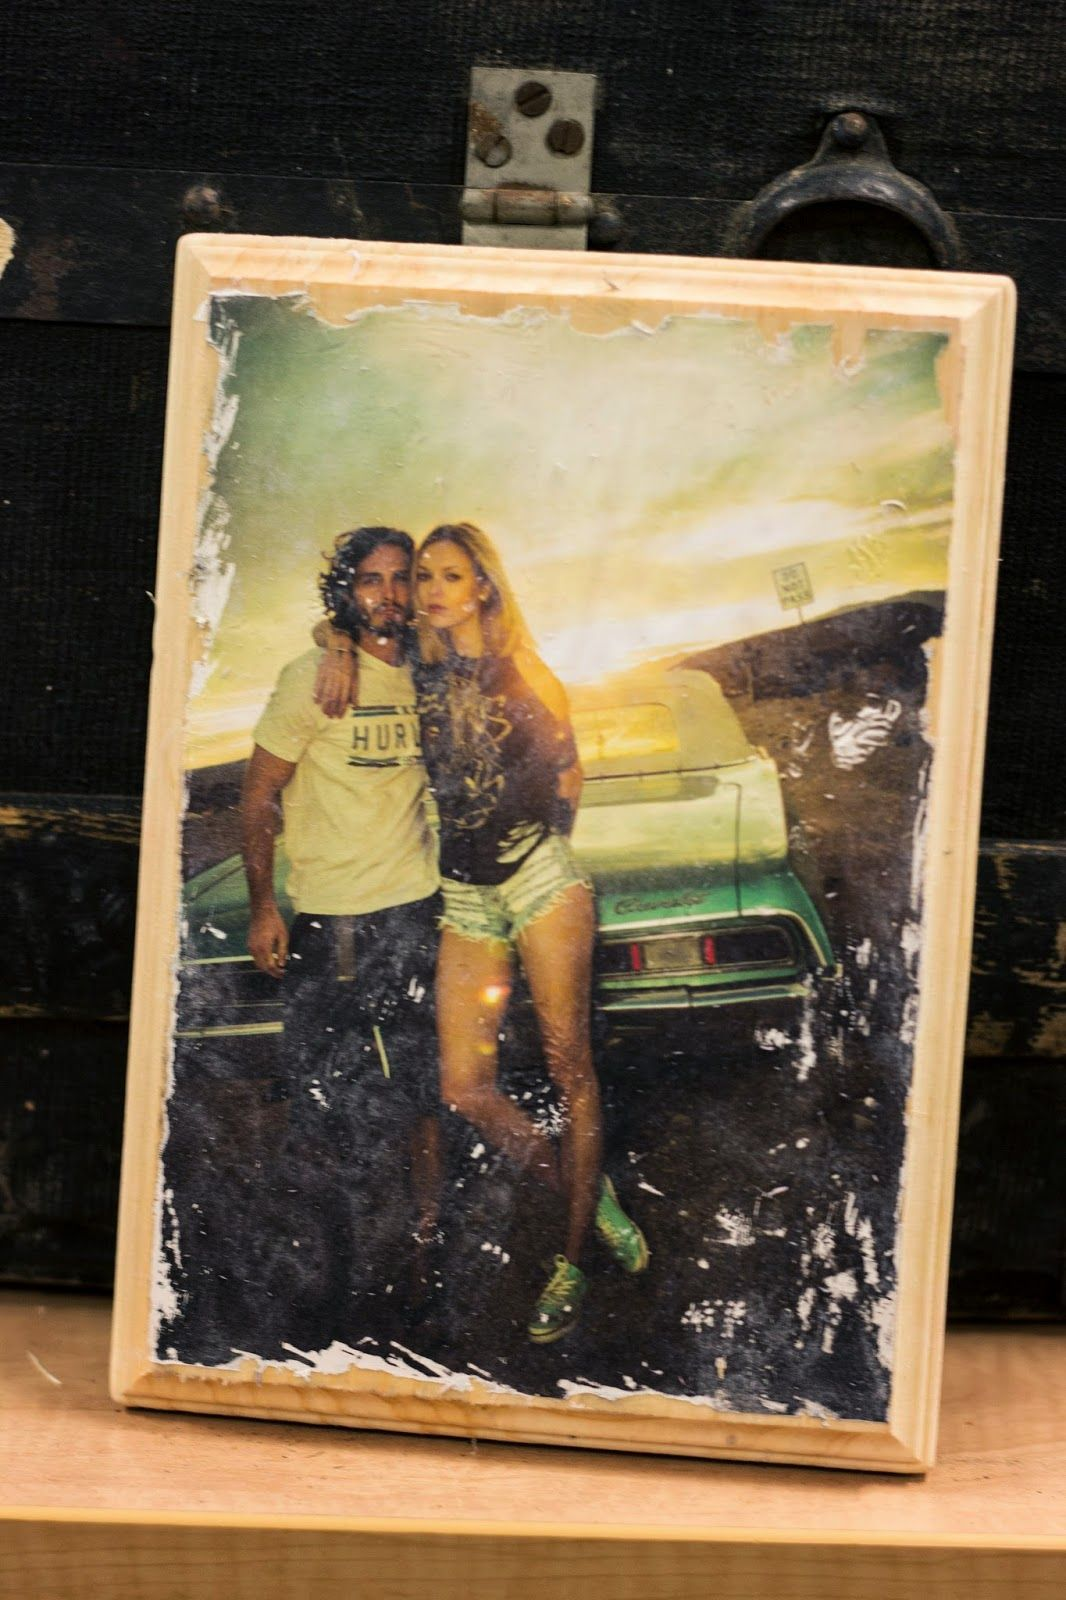 Diy Photo To Wood Transfer Wood Transfer Photo On Wood Diy Photo